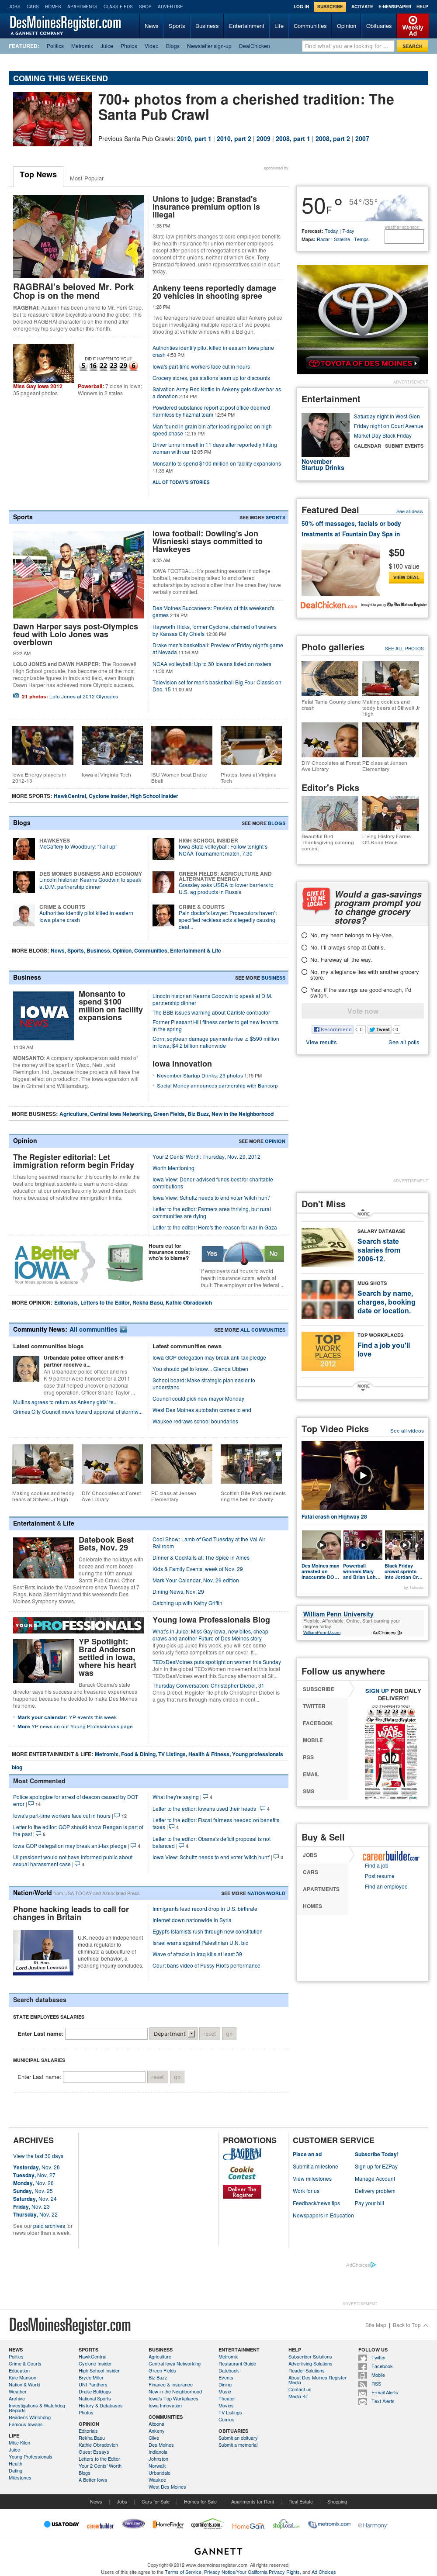 DesMoinesRegister.com at Thursday Nov. 29, 2012, 11:08 p.m. UTC